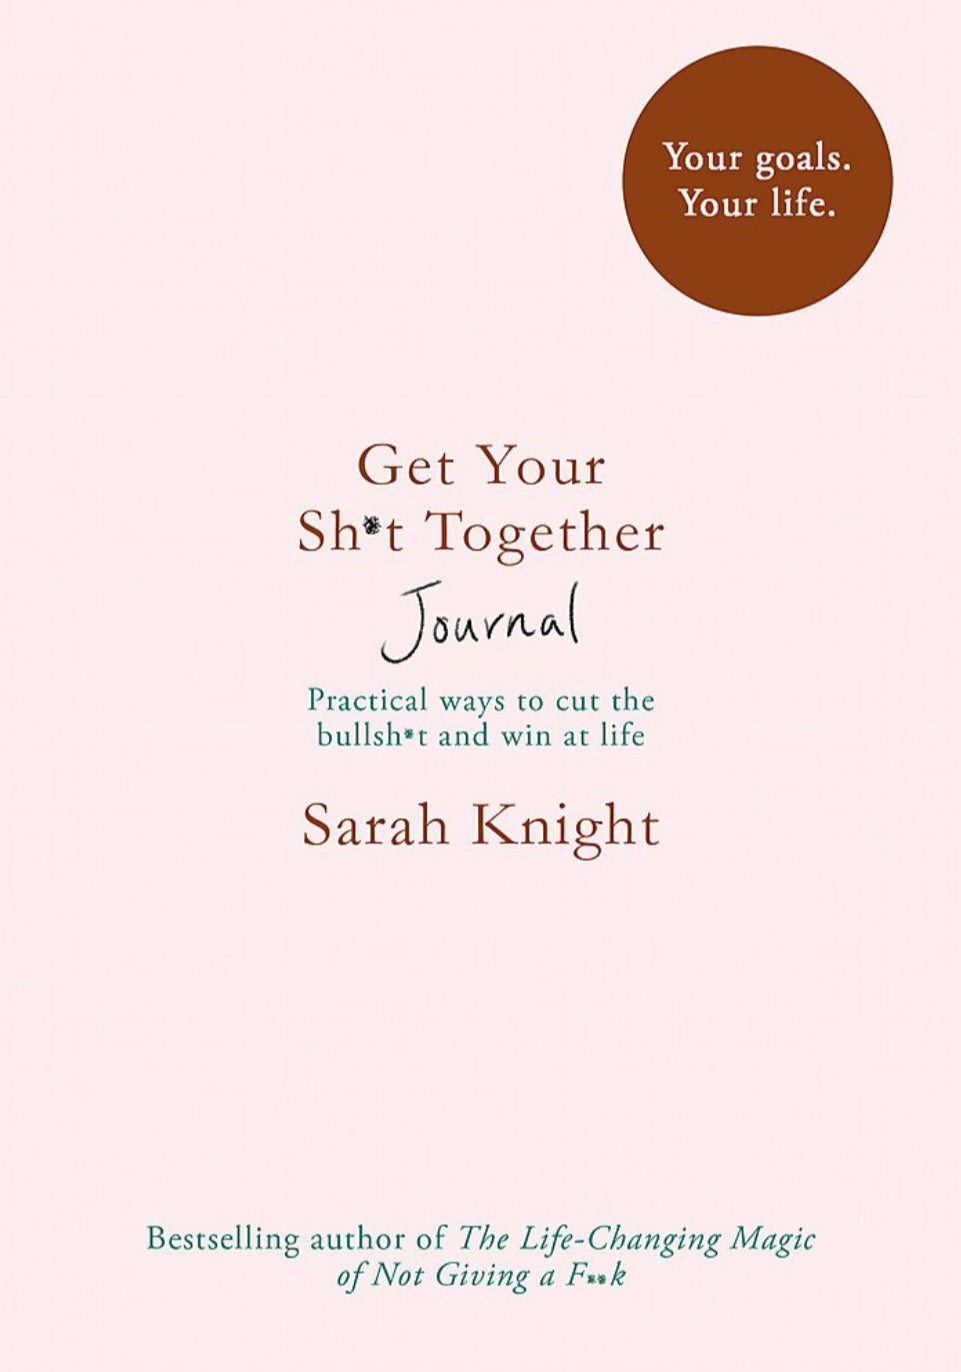 Get Your Sh*t Together Journal - Sarah Knight